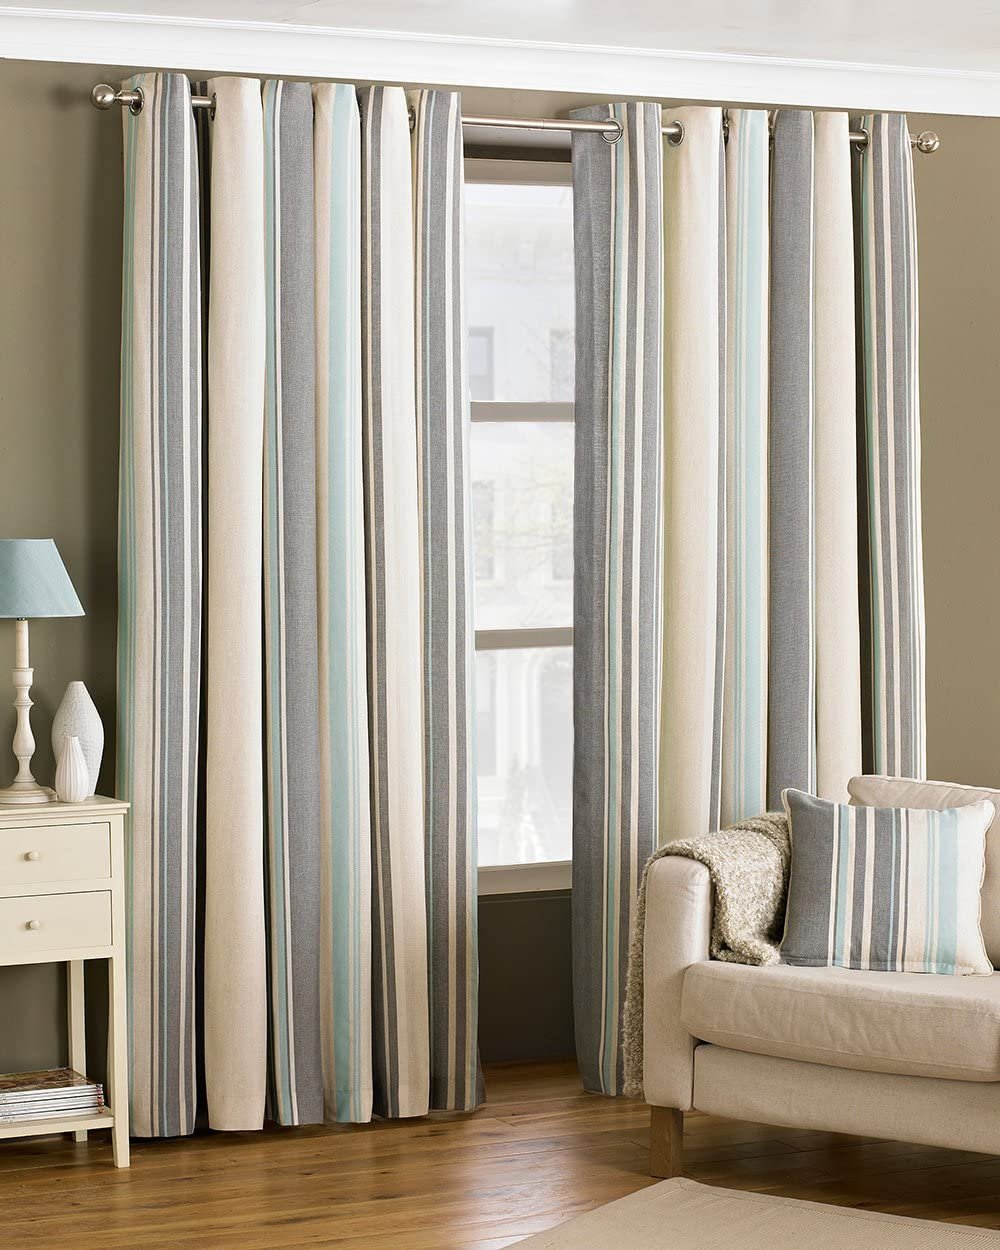 """Riva Paoletti Broadway Ringtop Eyelet Curtains (Pair) - Blue, Grey And Cream - Modern Striped Design - Ready Made - Room Darkening Design - Polycotton - 117Cm Width X 137Cm Drop (46"""" X 54"""" Inches) Duck Egg 46x54 (117x137cm)"""